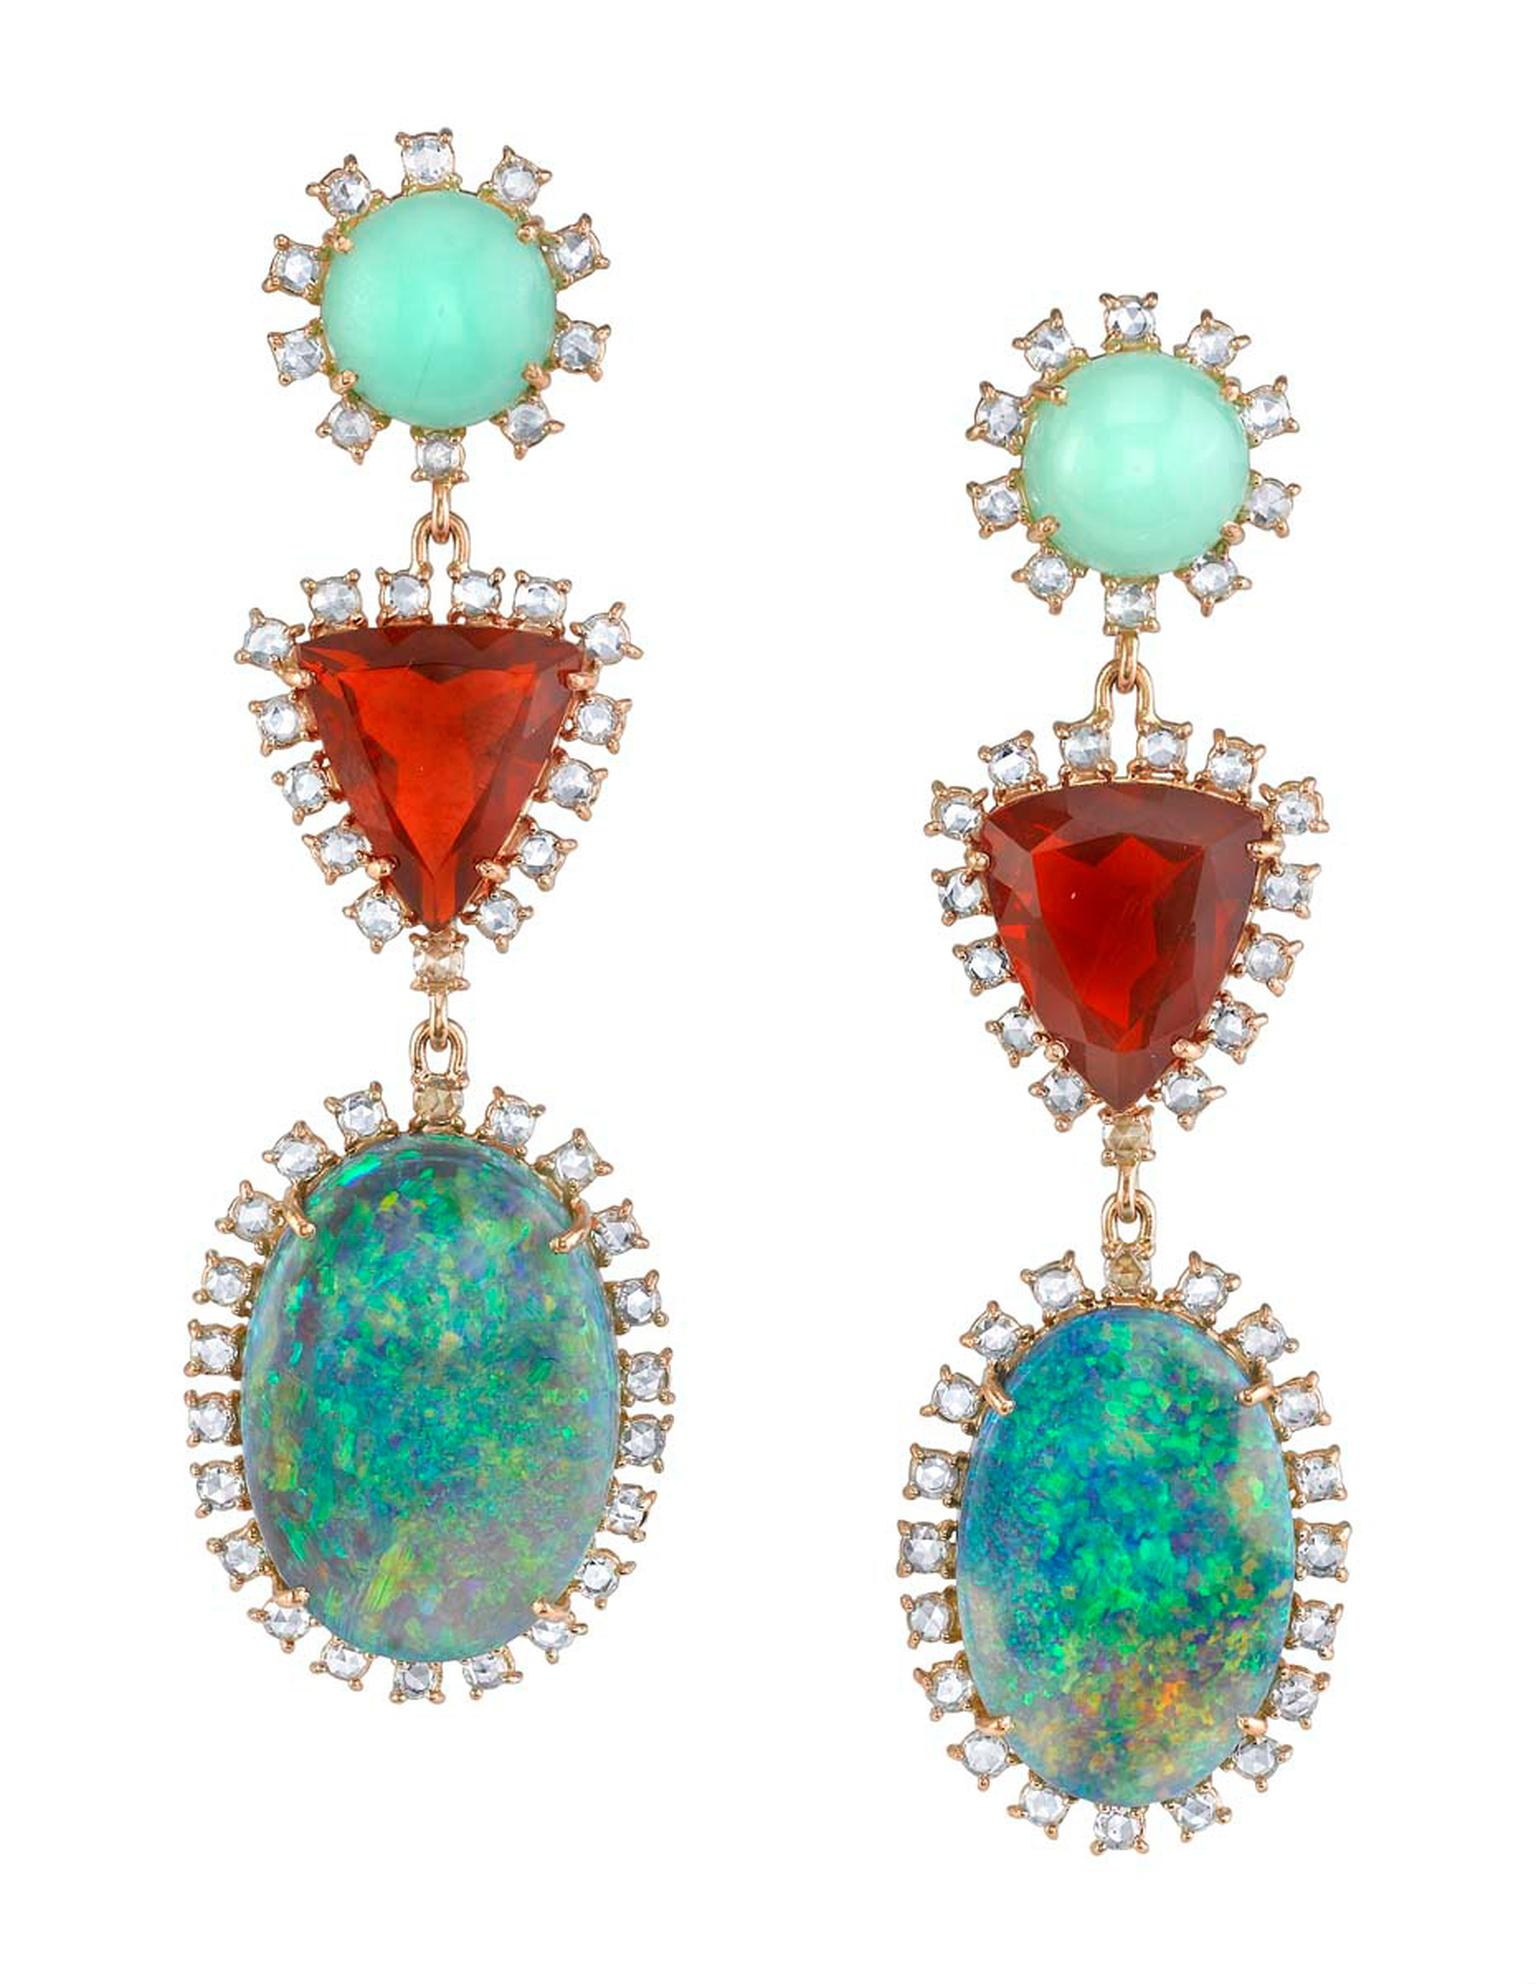 One-of-a-kind Irene Neuwirth earrings in rose gold with mint chrysoprase, Mexican fire opals, Lightning Ridge opals and rose-cut diamonds.